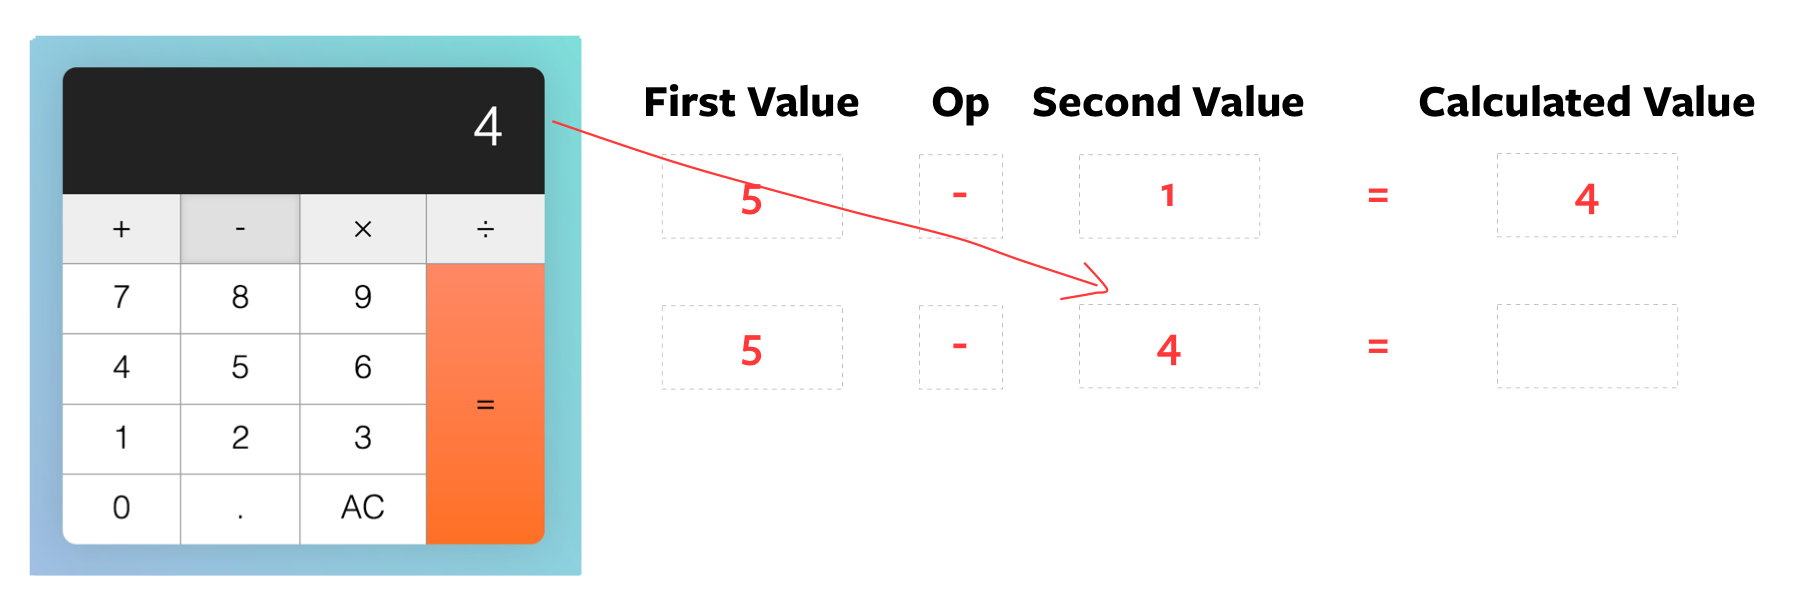 Once again, displayed num is set as the `secondValue` before the calculation